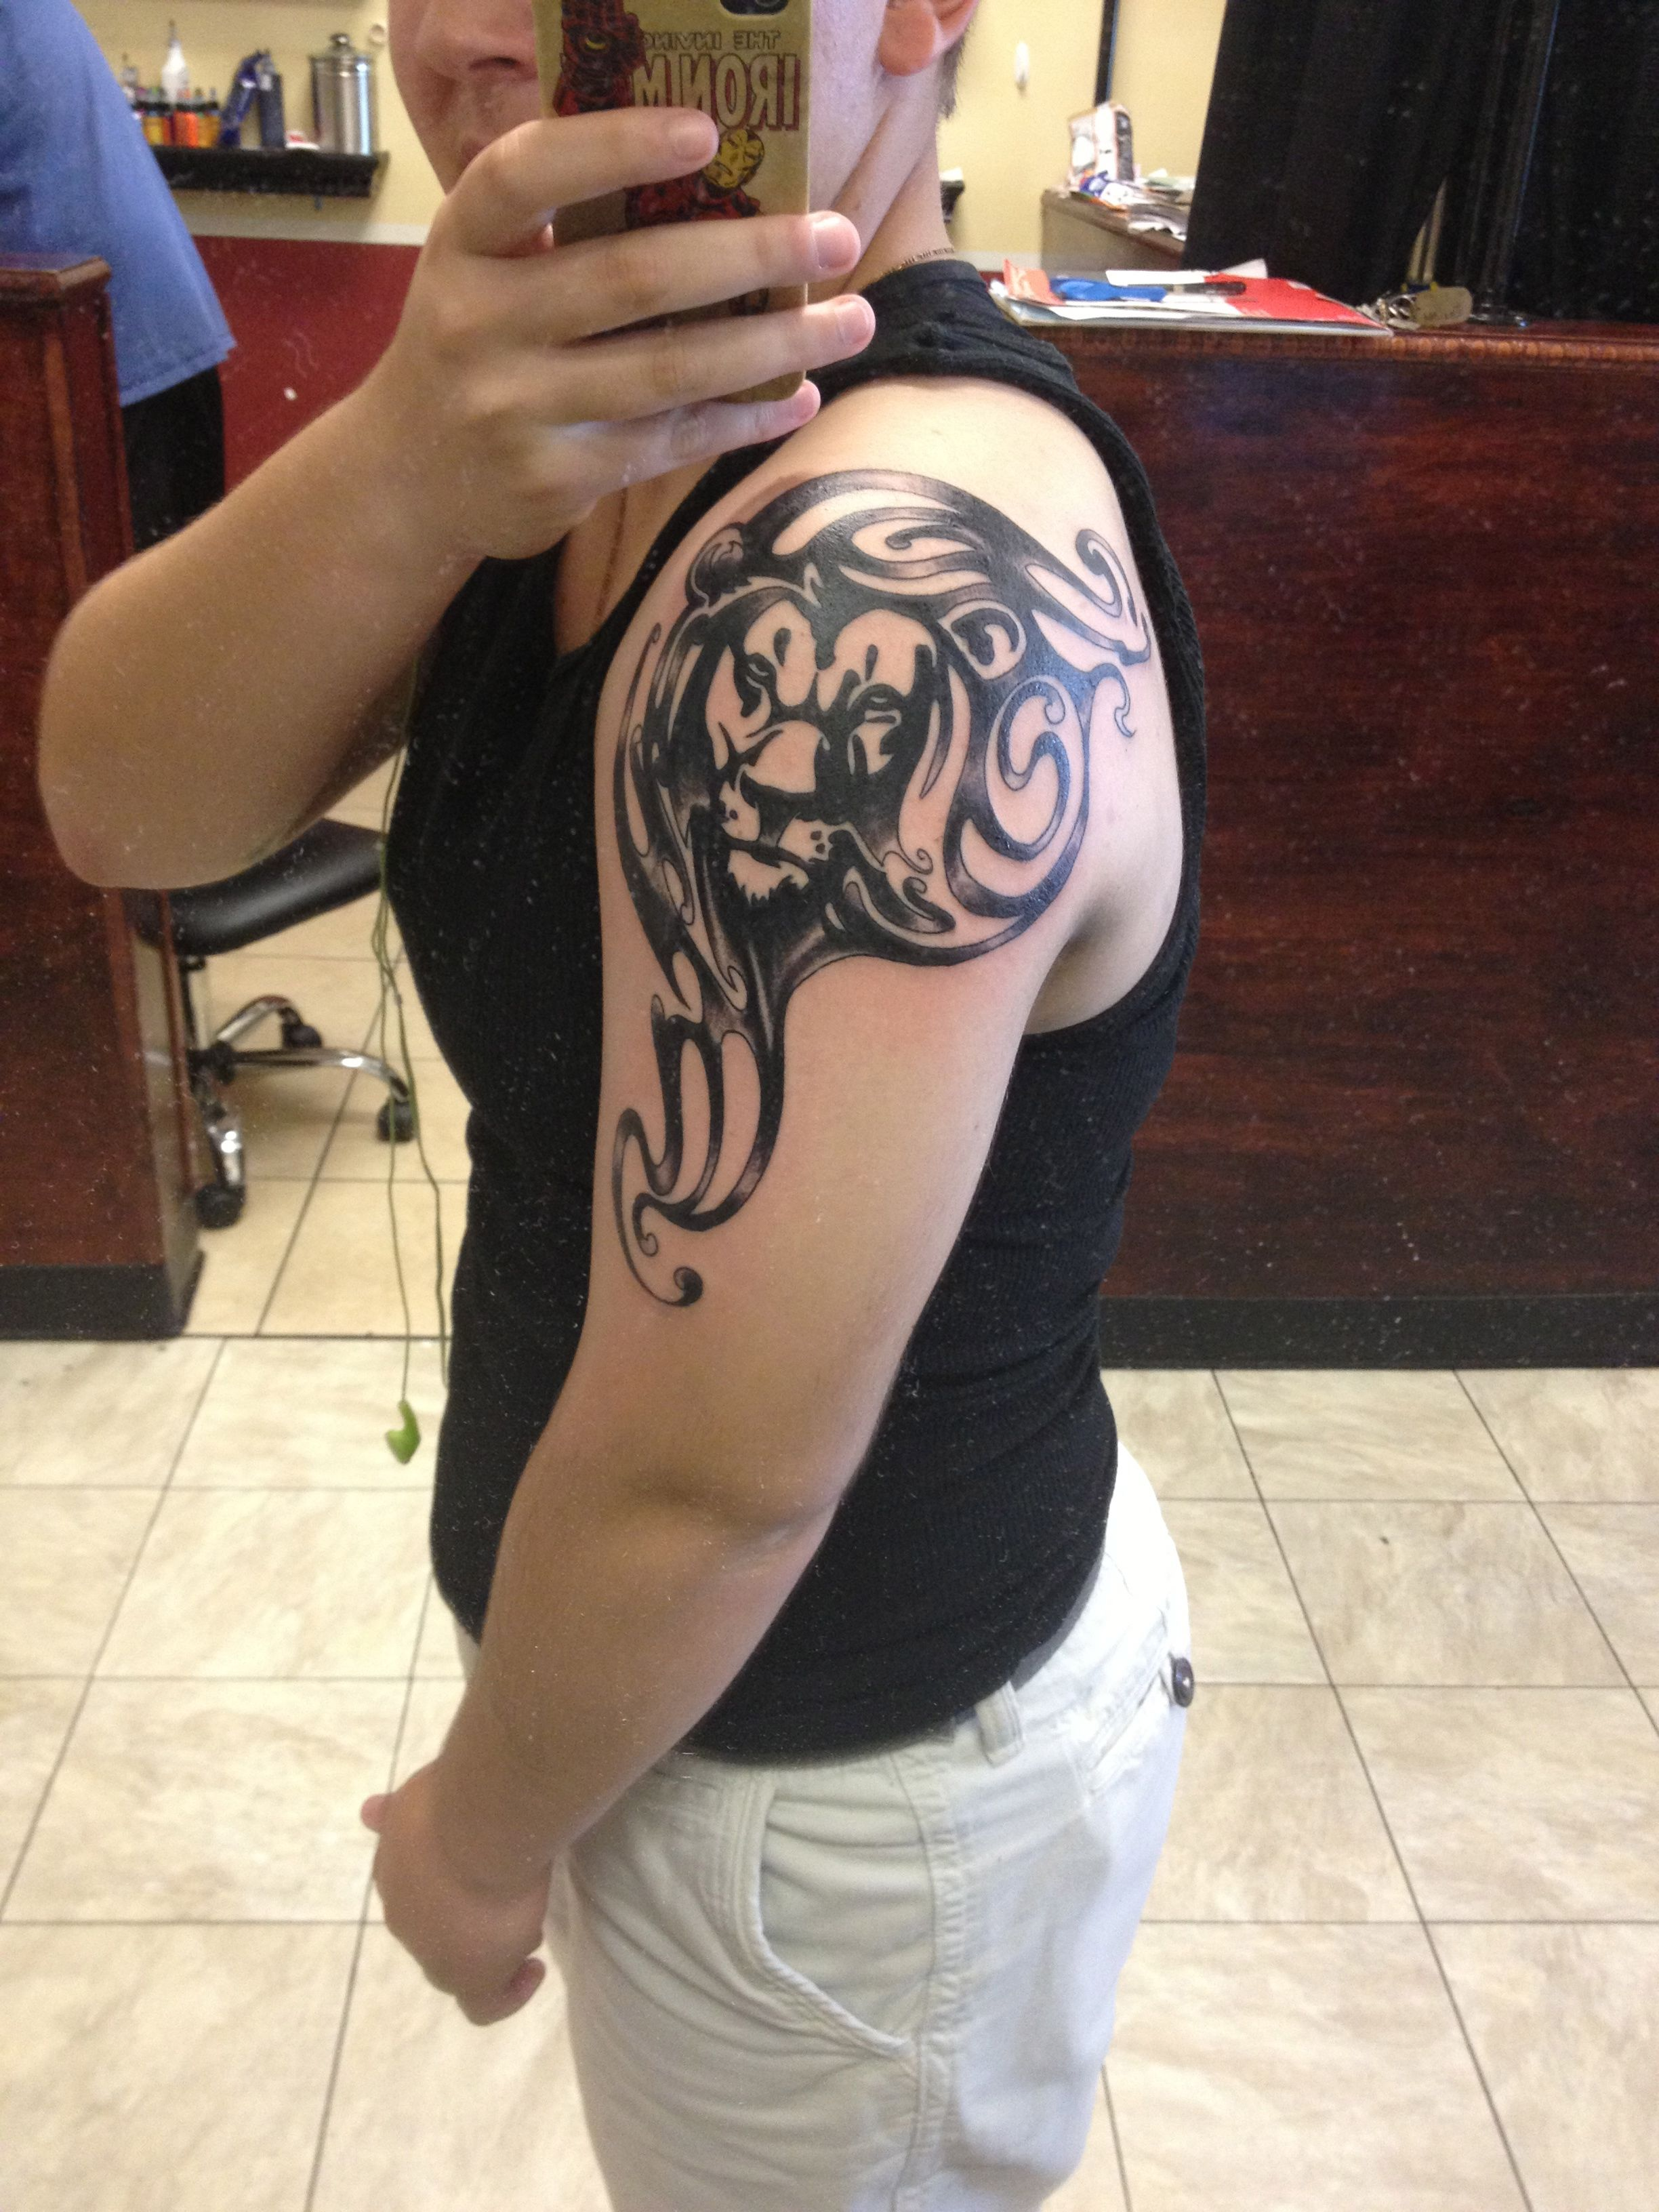 New tribal sagittarius tattoo for girls and women tattoobite com - Tattoo 5 Tribal Leo Lion